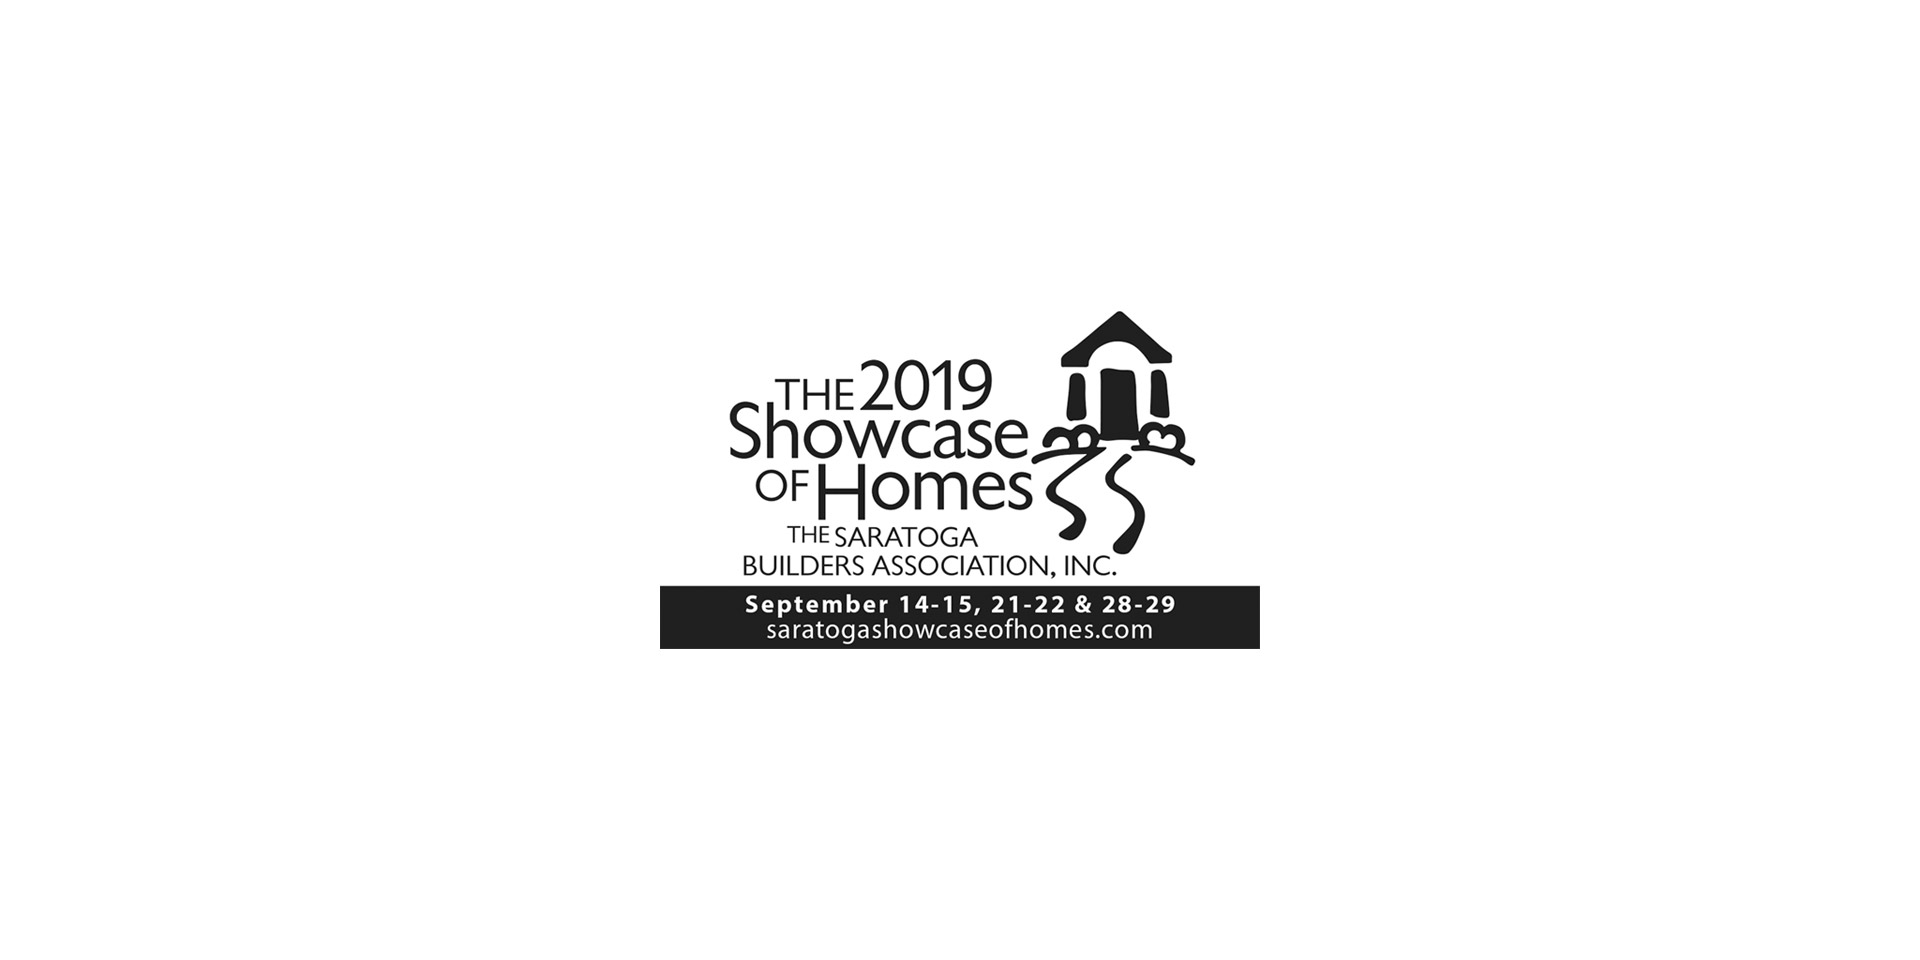 2019 Showcase of Homes dates banner